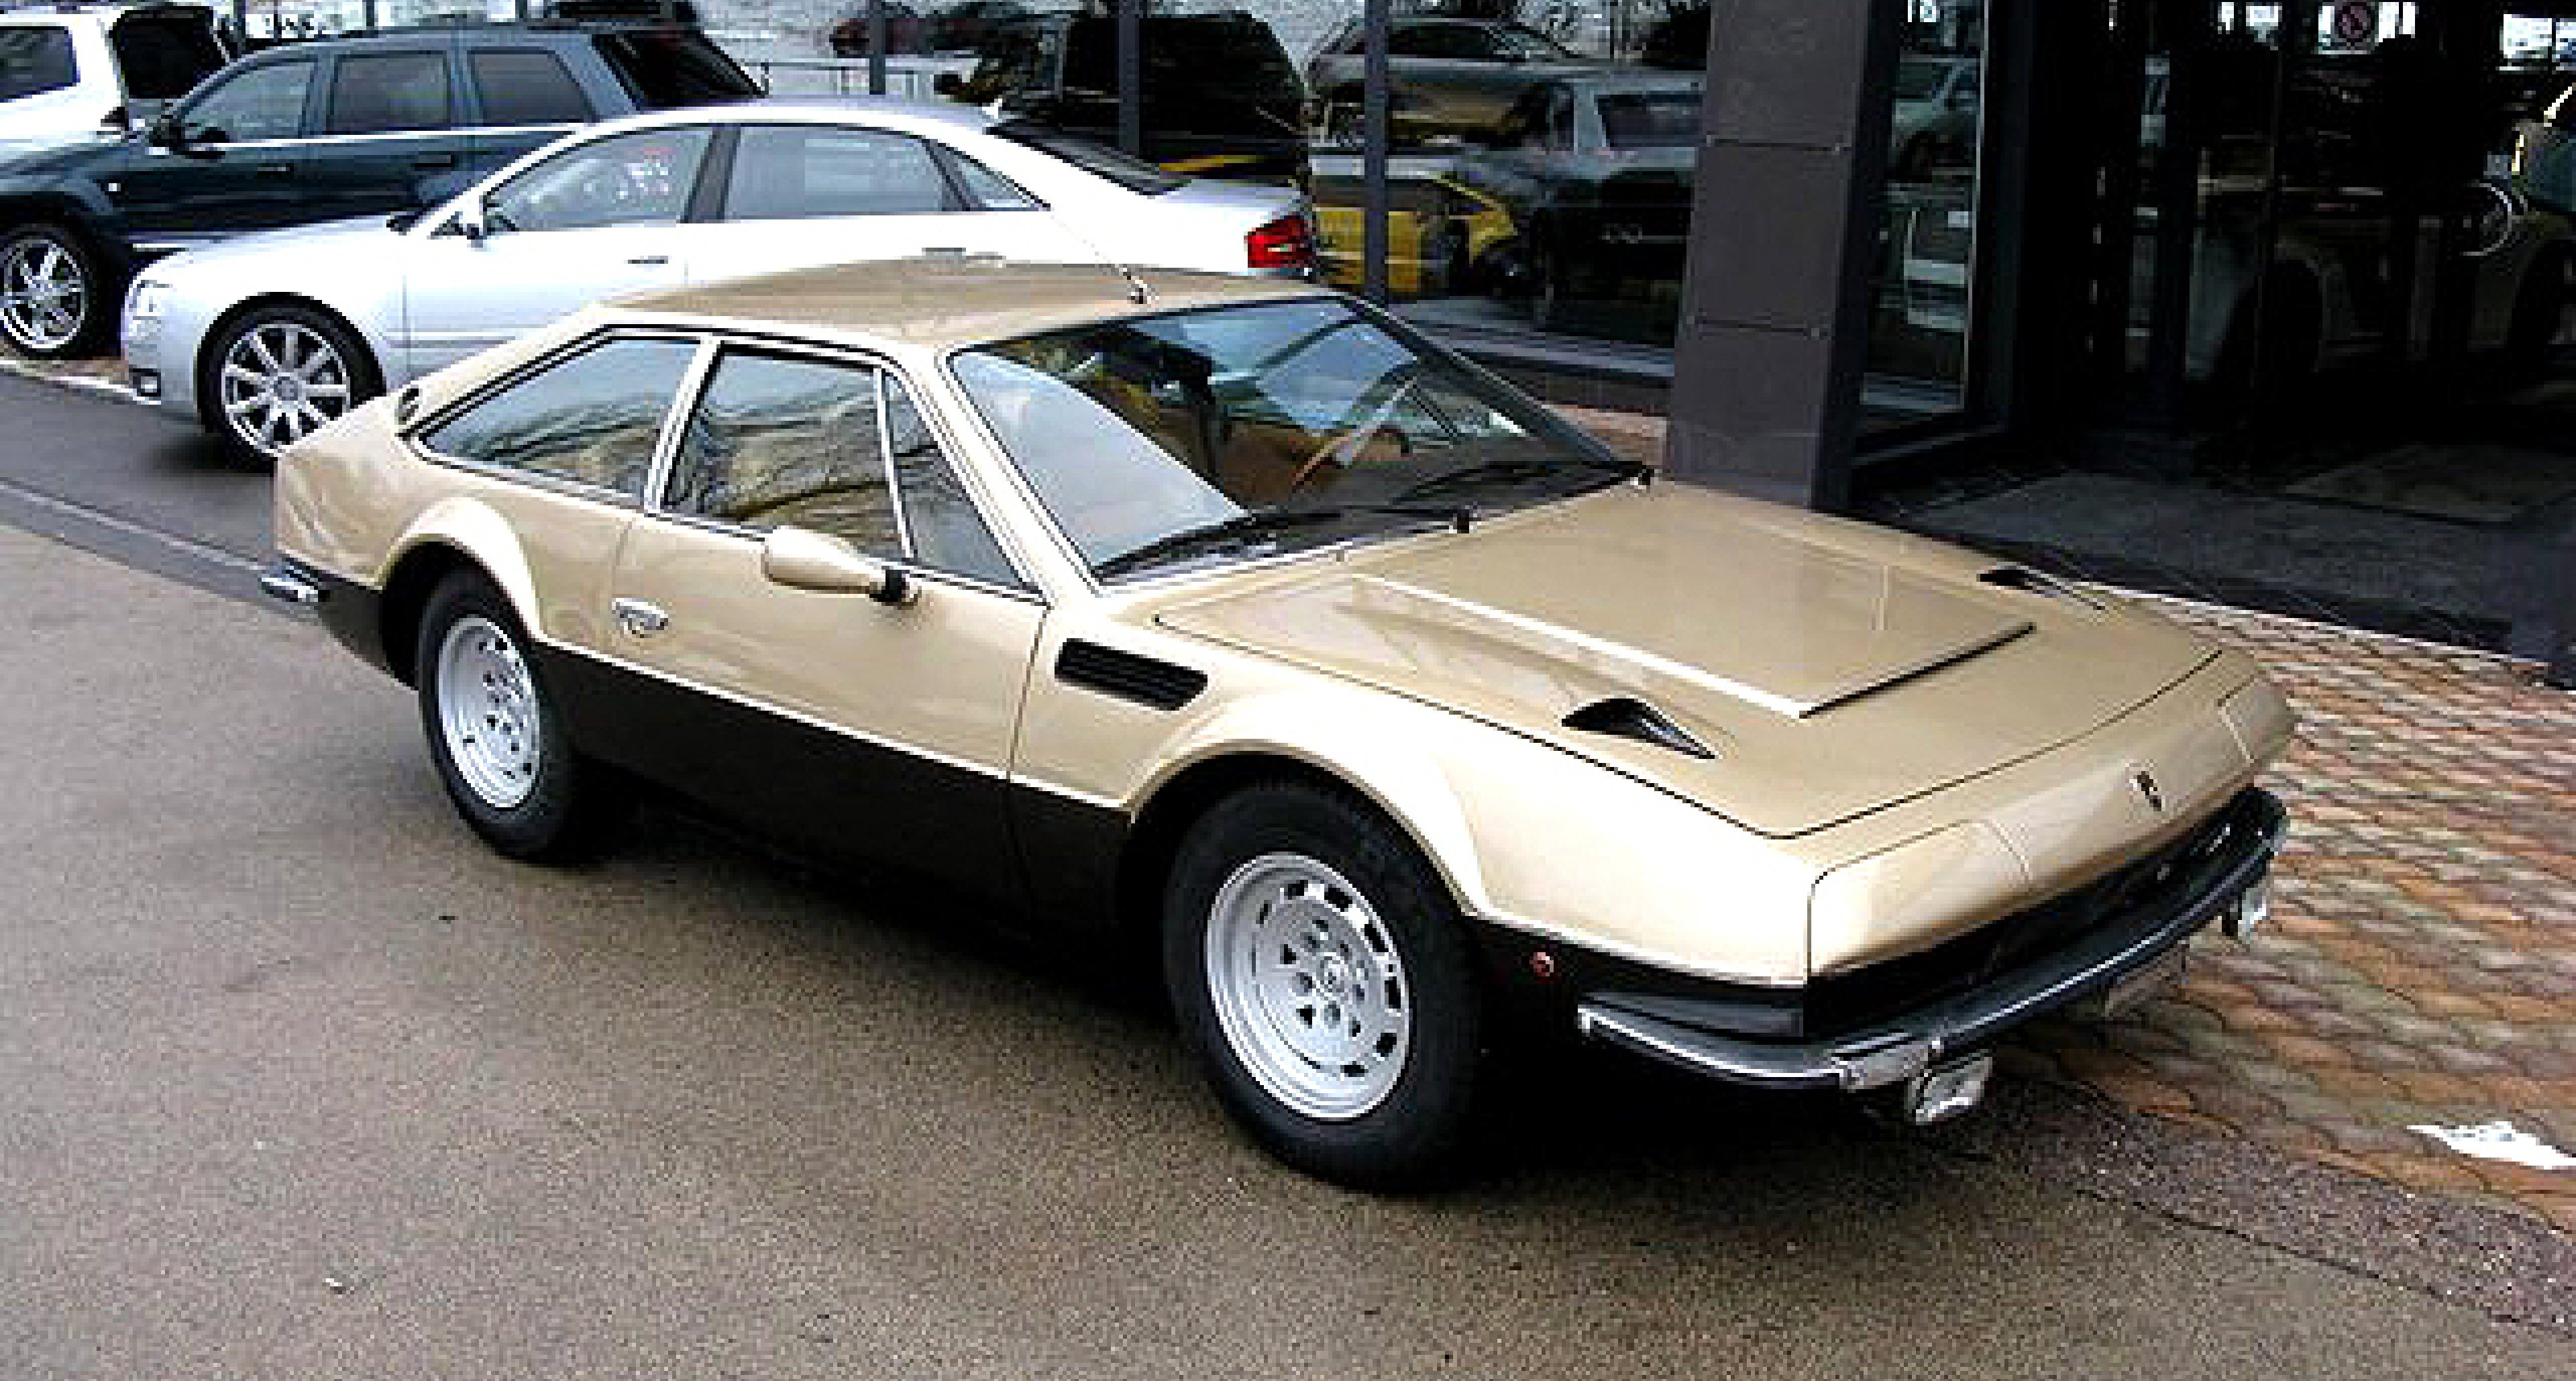 Top Five: Our favourite supercars of the 70s